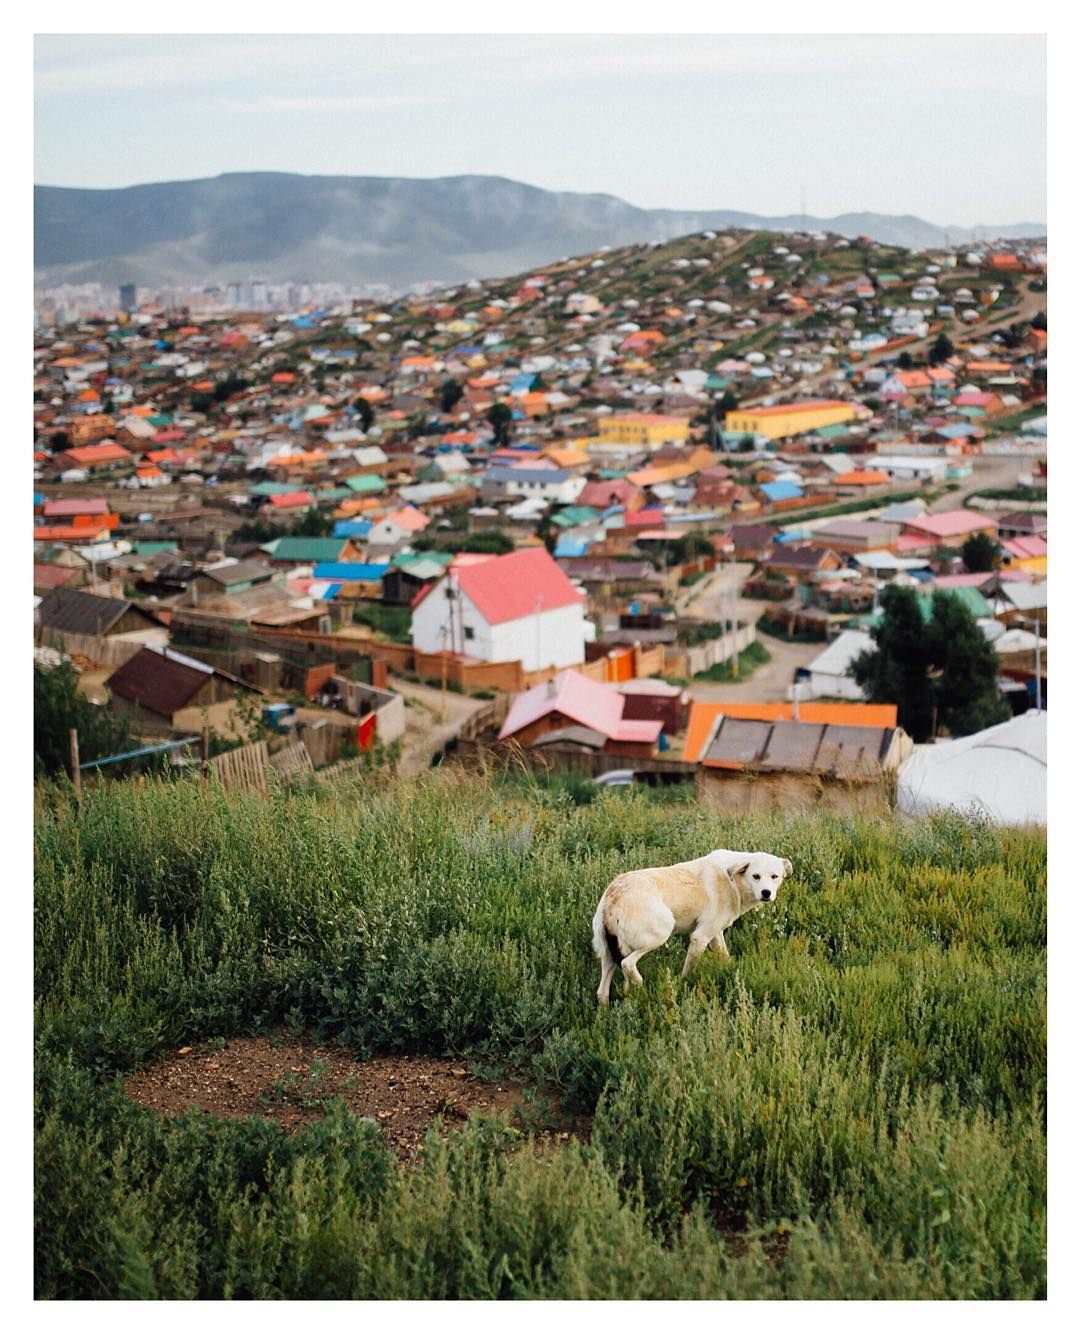 Jussi Ulkuniemi On Instagram Welcome To Ger District Ulaanbaatar Mongolia 2014 Really Recommend Reading About This Place